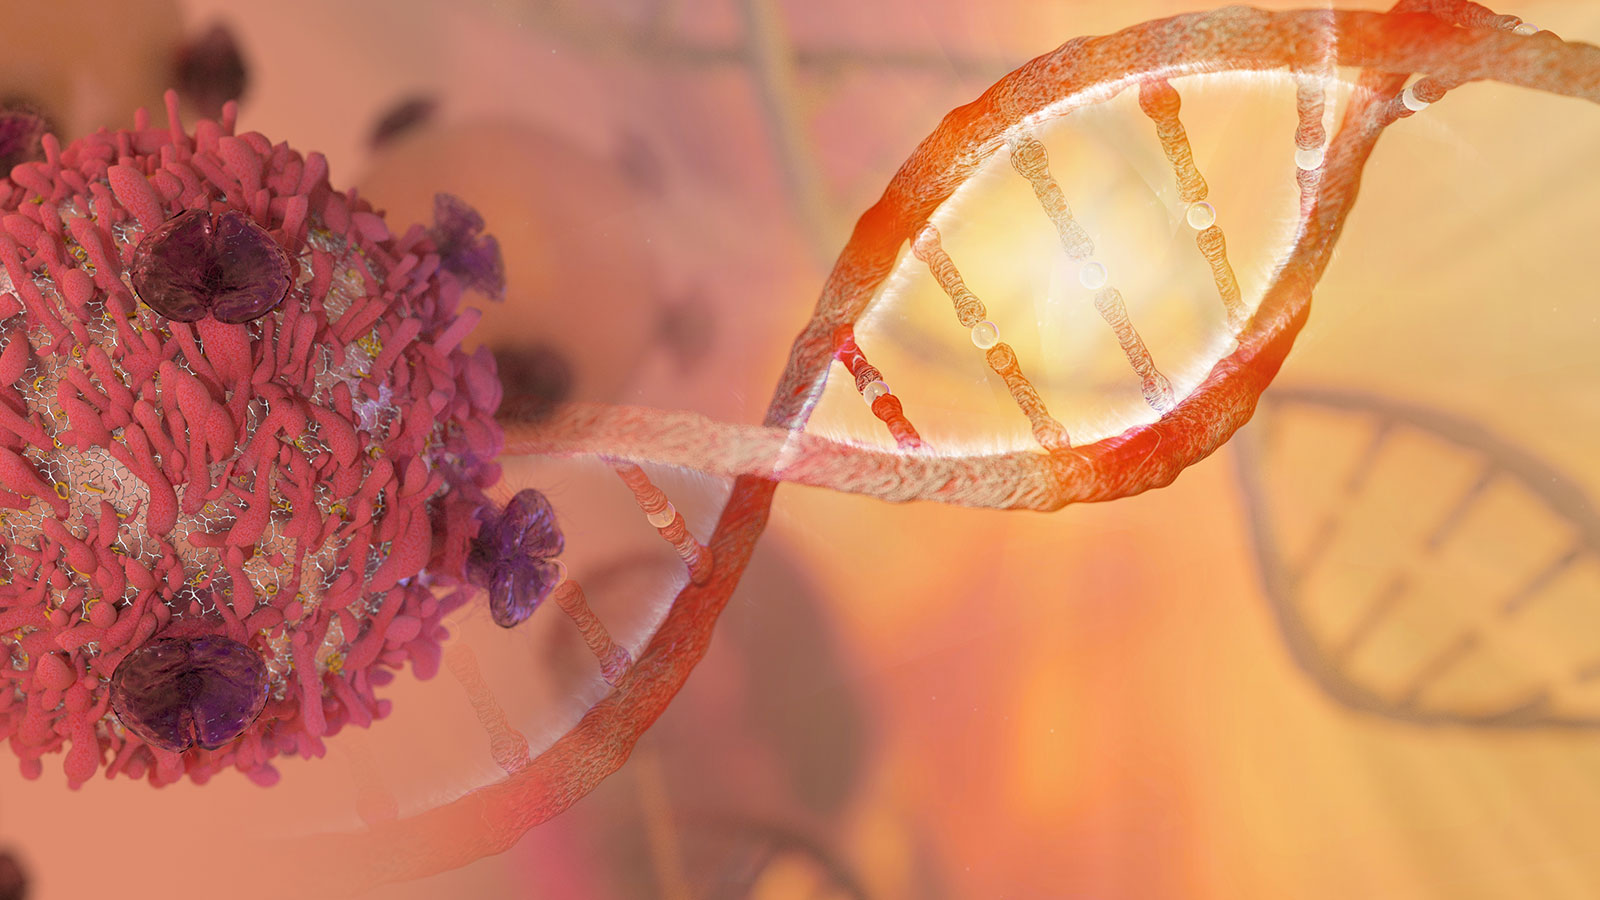 Non-invasive sample types for cancer research and screening